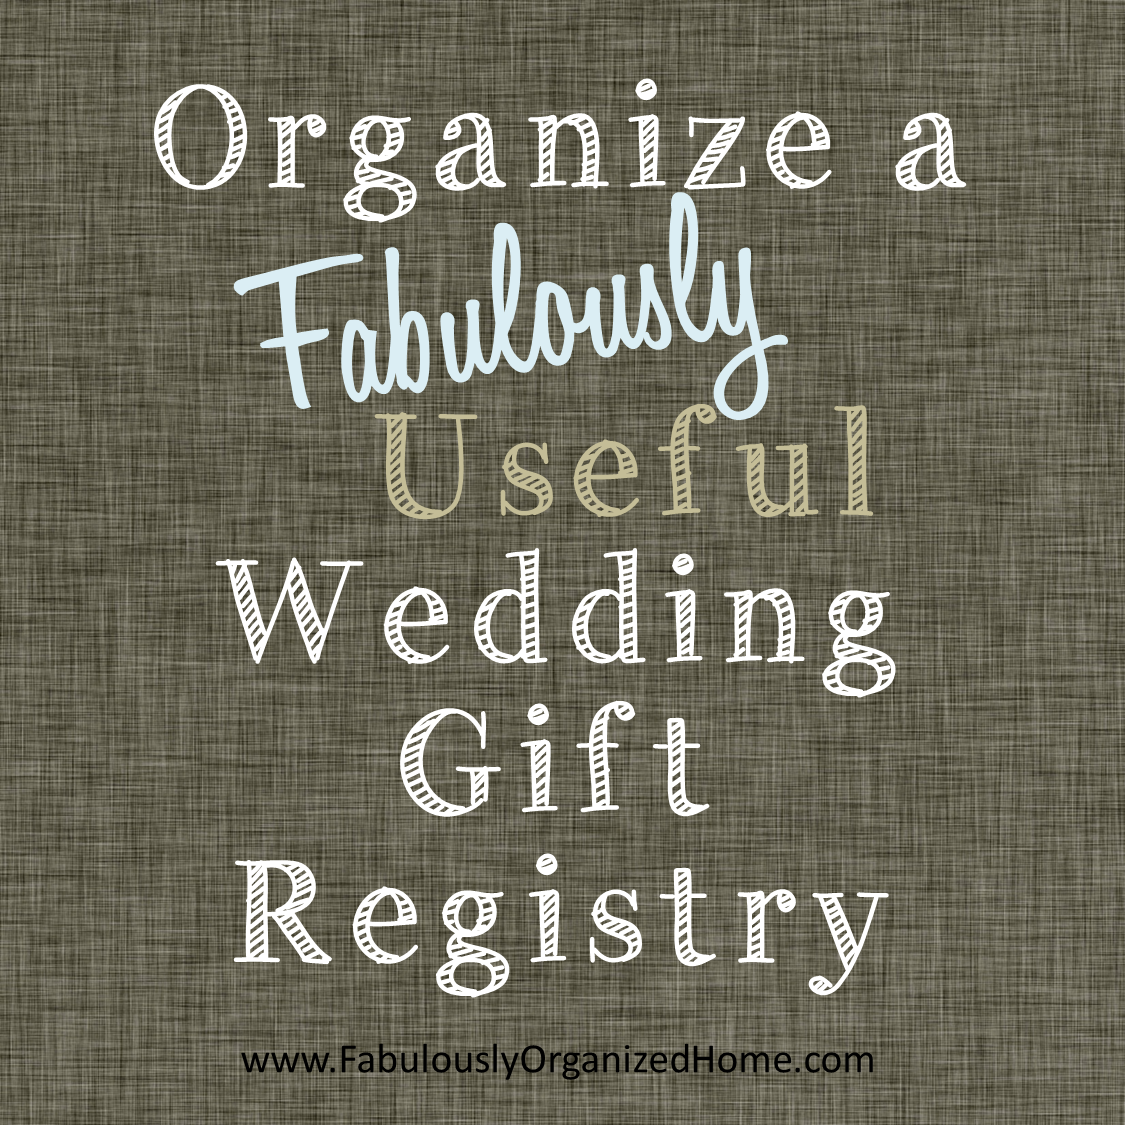 Wedding Registry List Ideas: Fabulously Organized Home's Guide To Creating A Useful